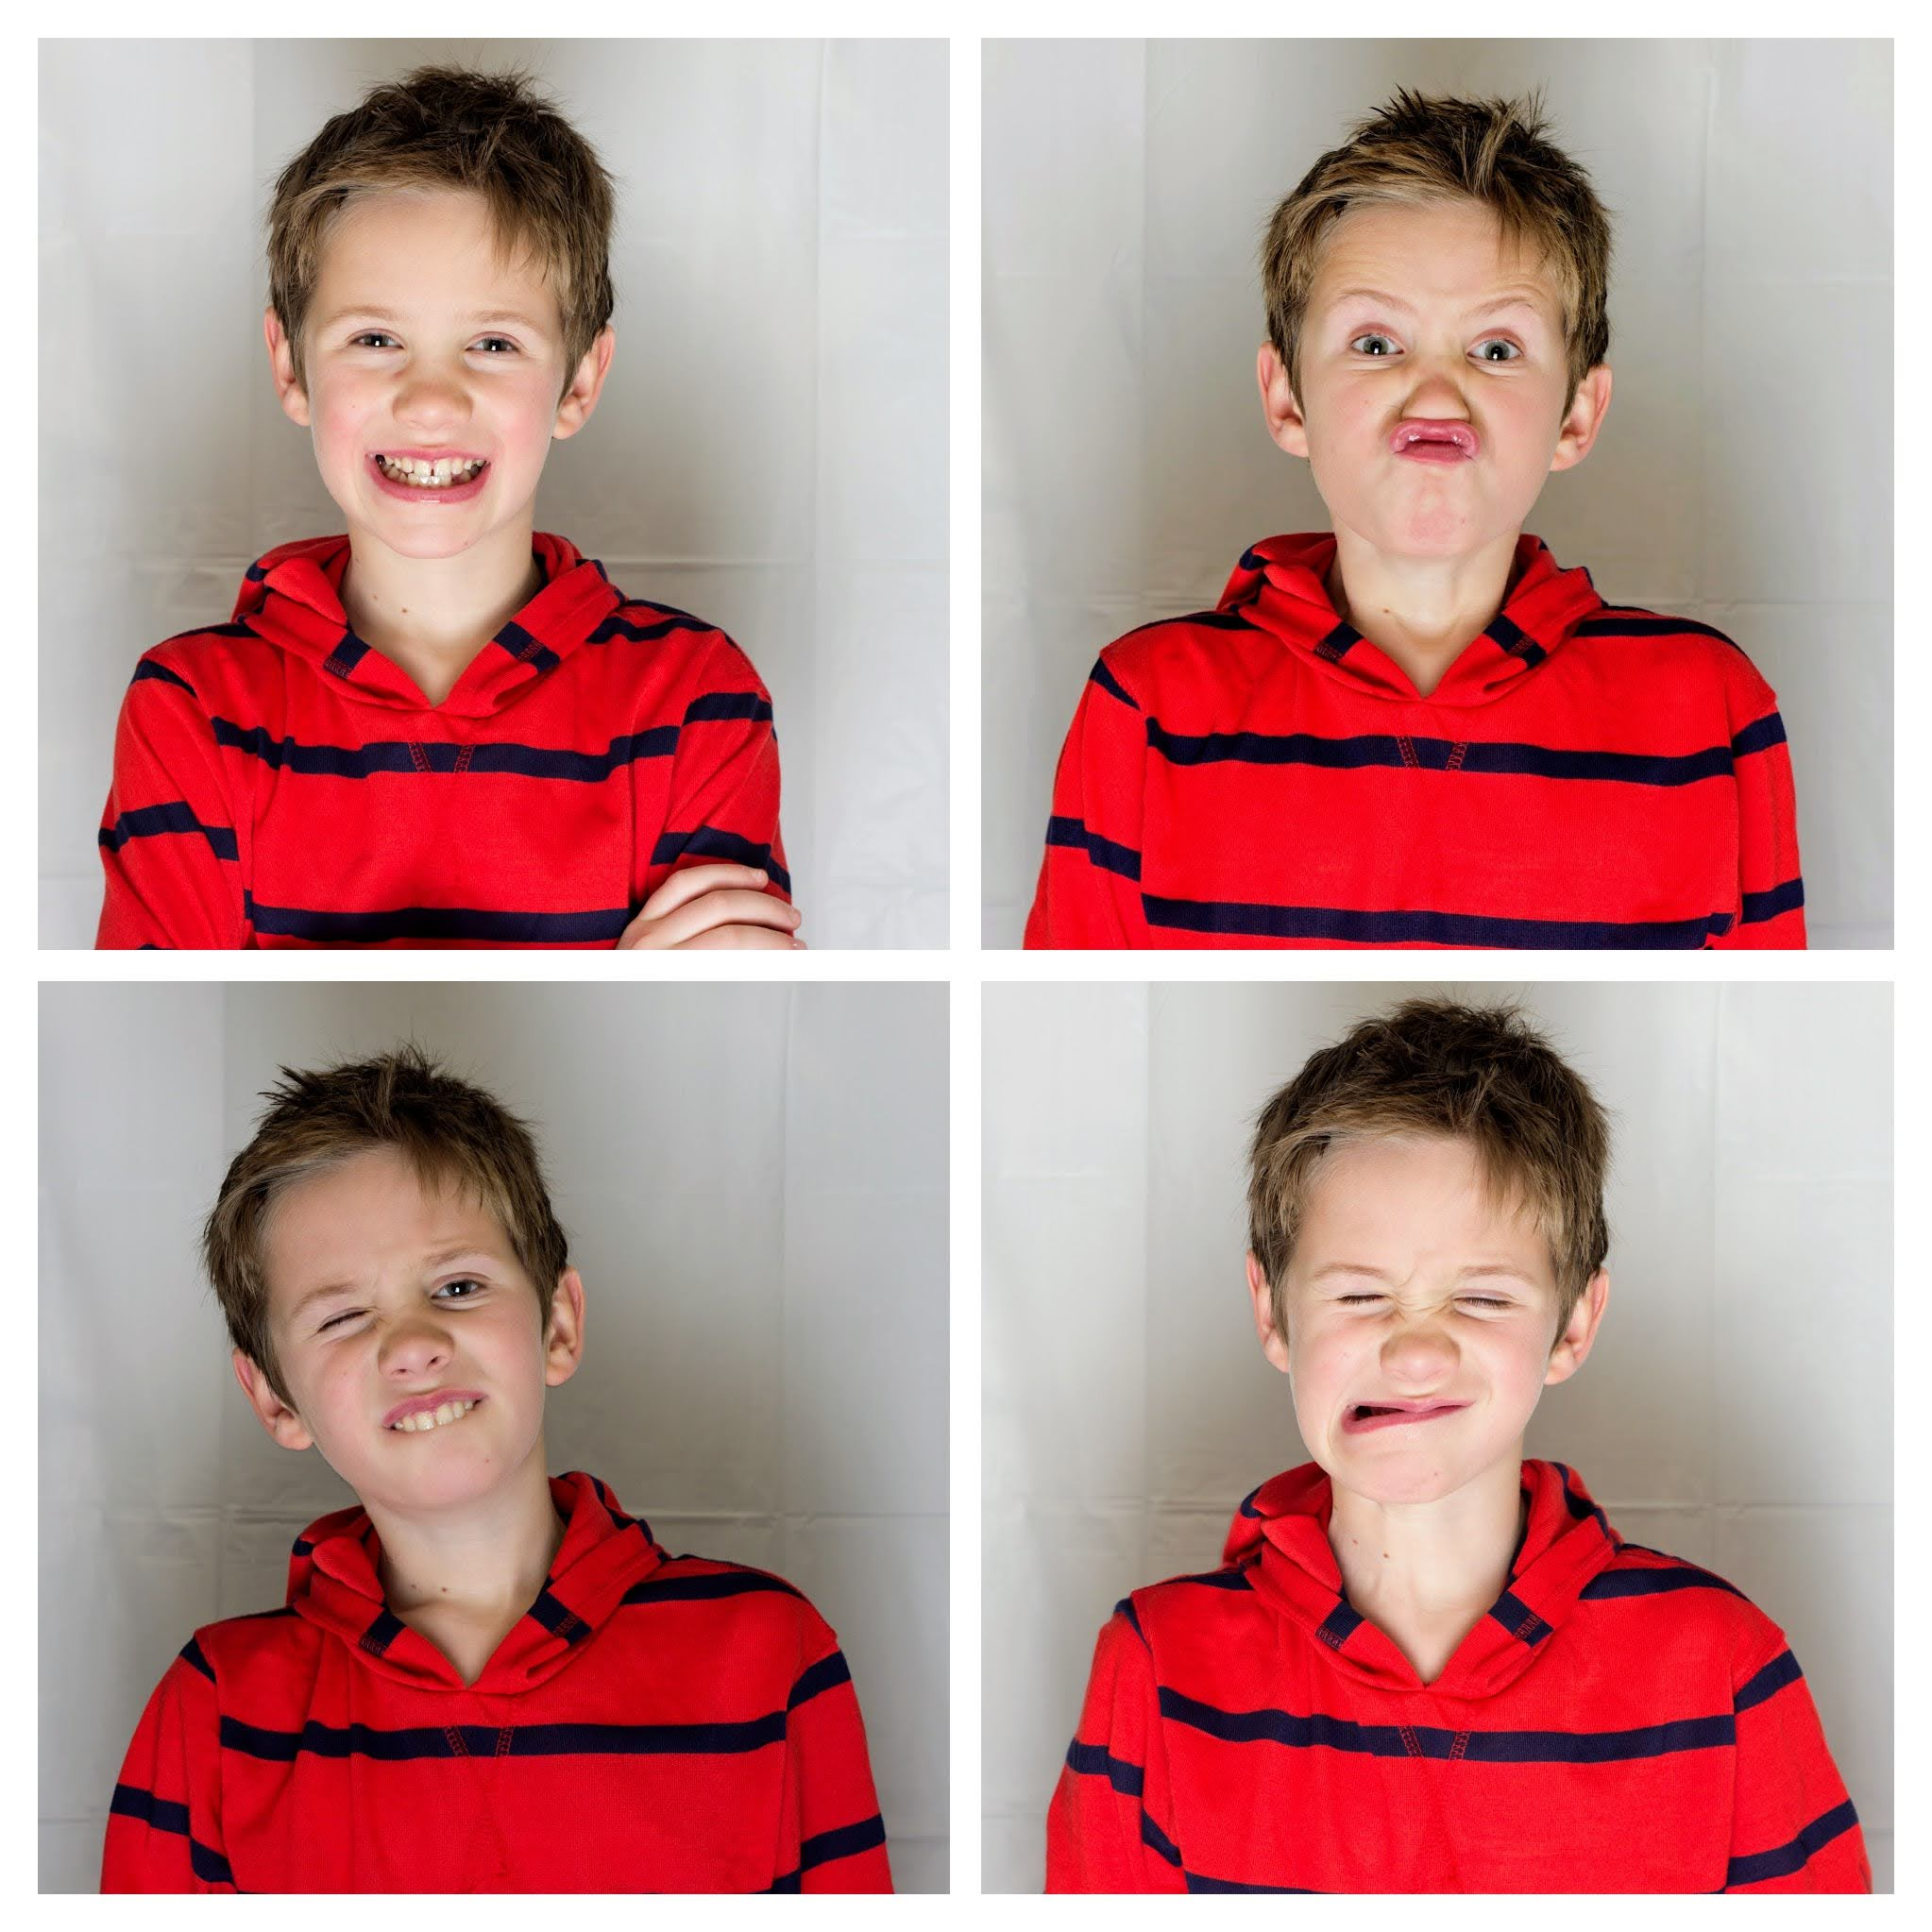 Child with four facial expressions